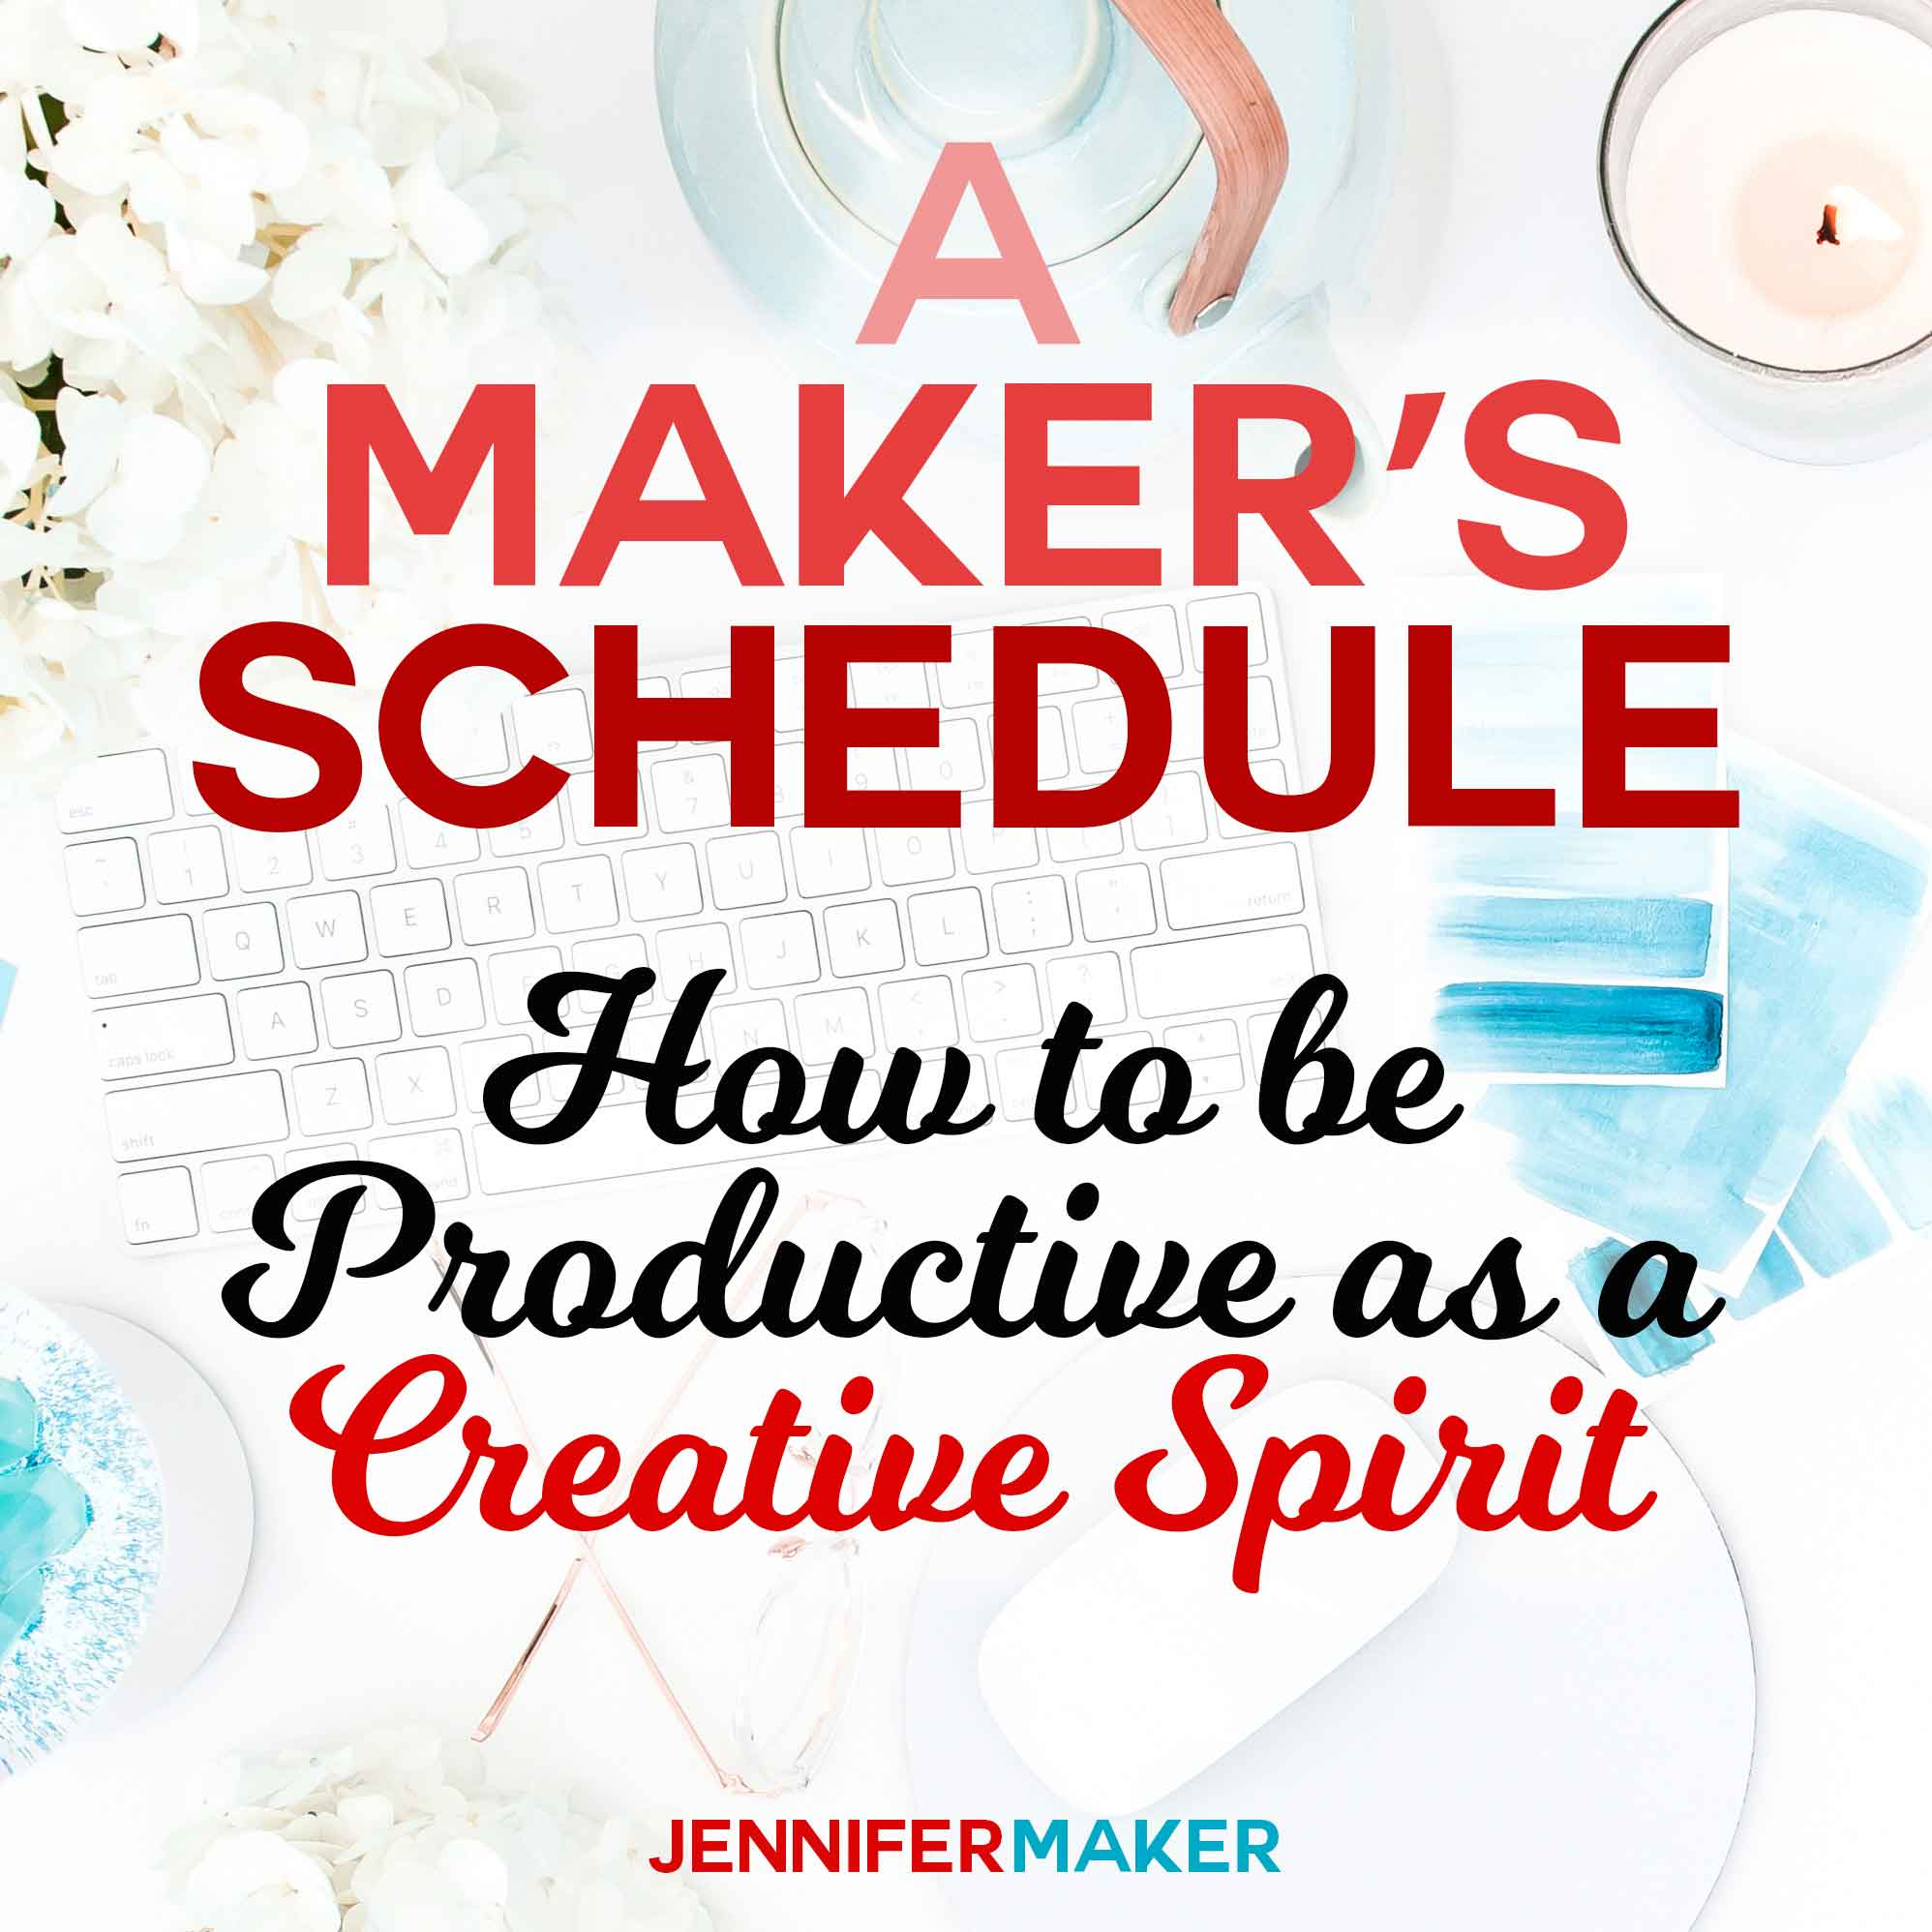 A Maker's Schedule: How to Be Productive as a Creative Spirit